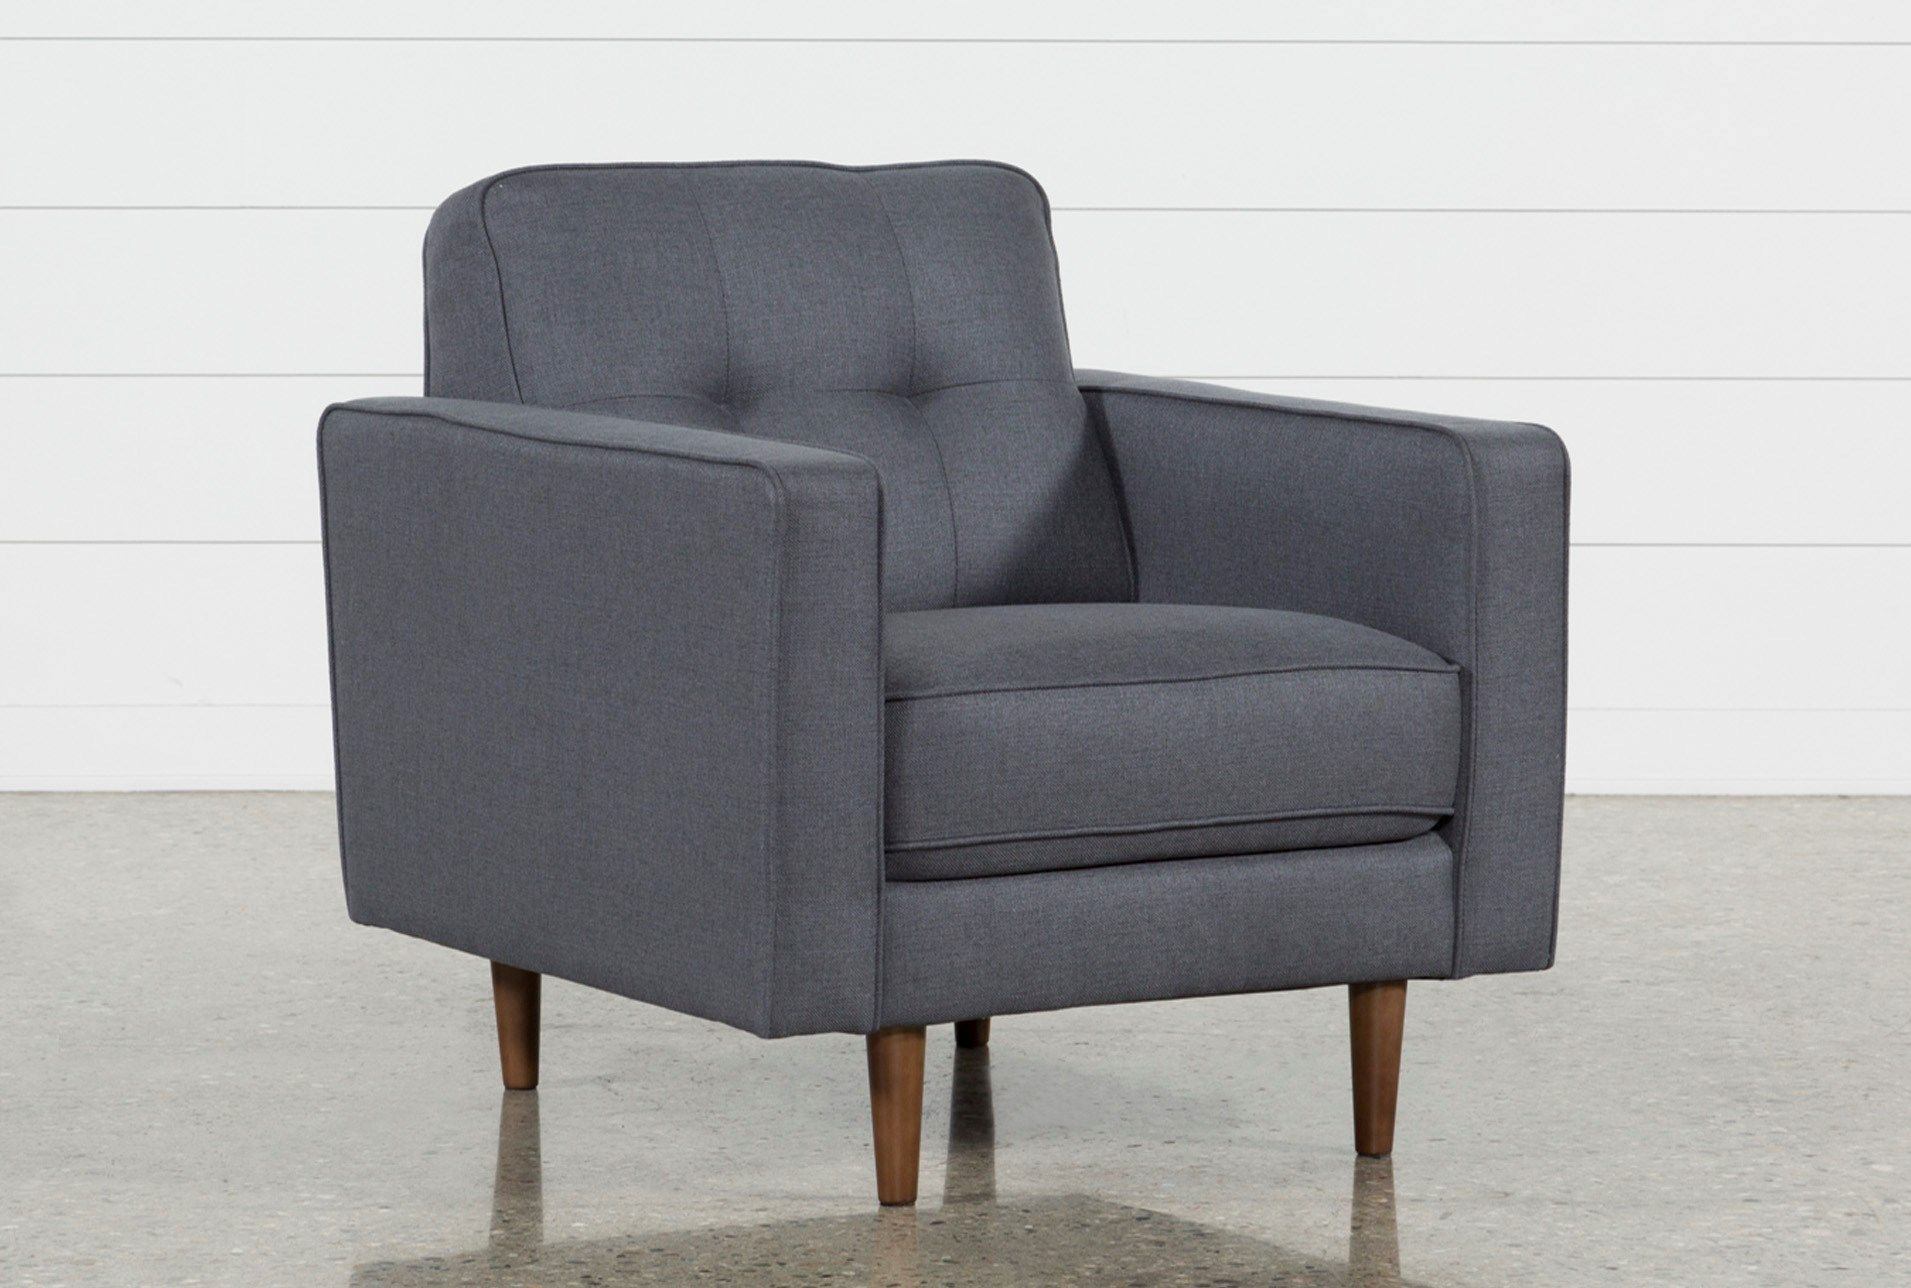 London Dark Grey Chair High Back Accent Chairs Grey Chair